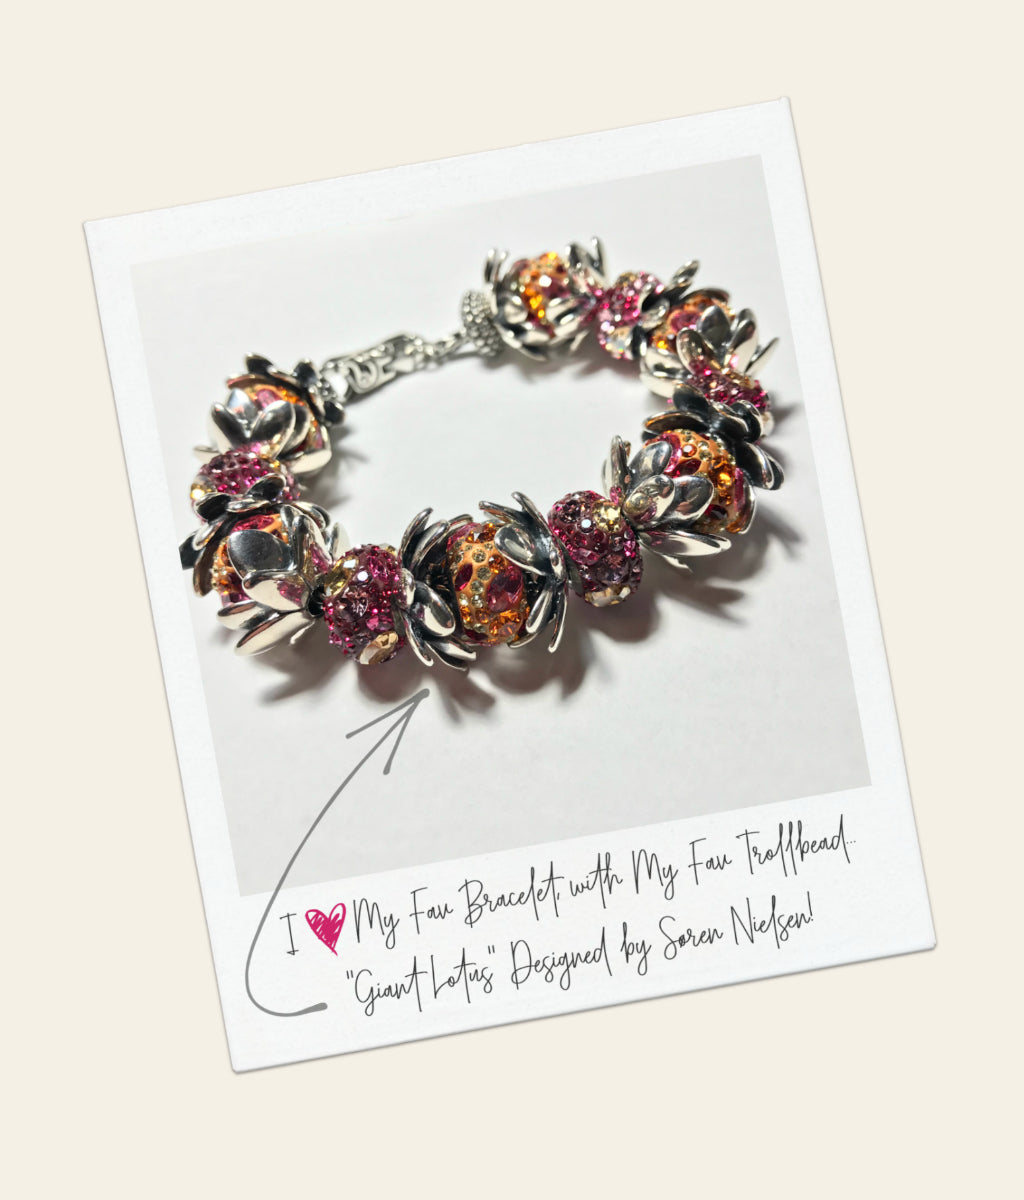 """Suzie's all-time FAV Søren Nielsen Trollbead is the awesome… Giant Lotus Pendant! I love this piece so much that it inspired my signature """"Giant Lotus"""" bracelet design, which is shown above. Isn't it a gorgeous bracelet?"""